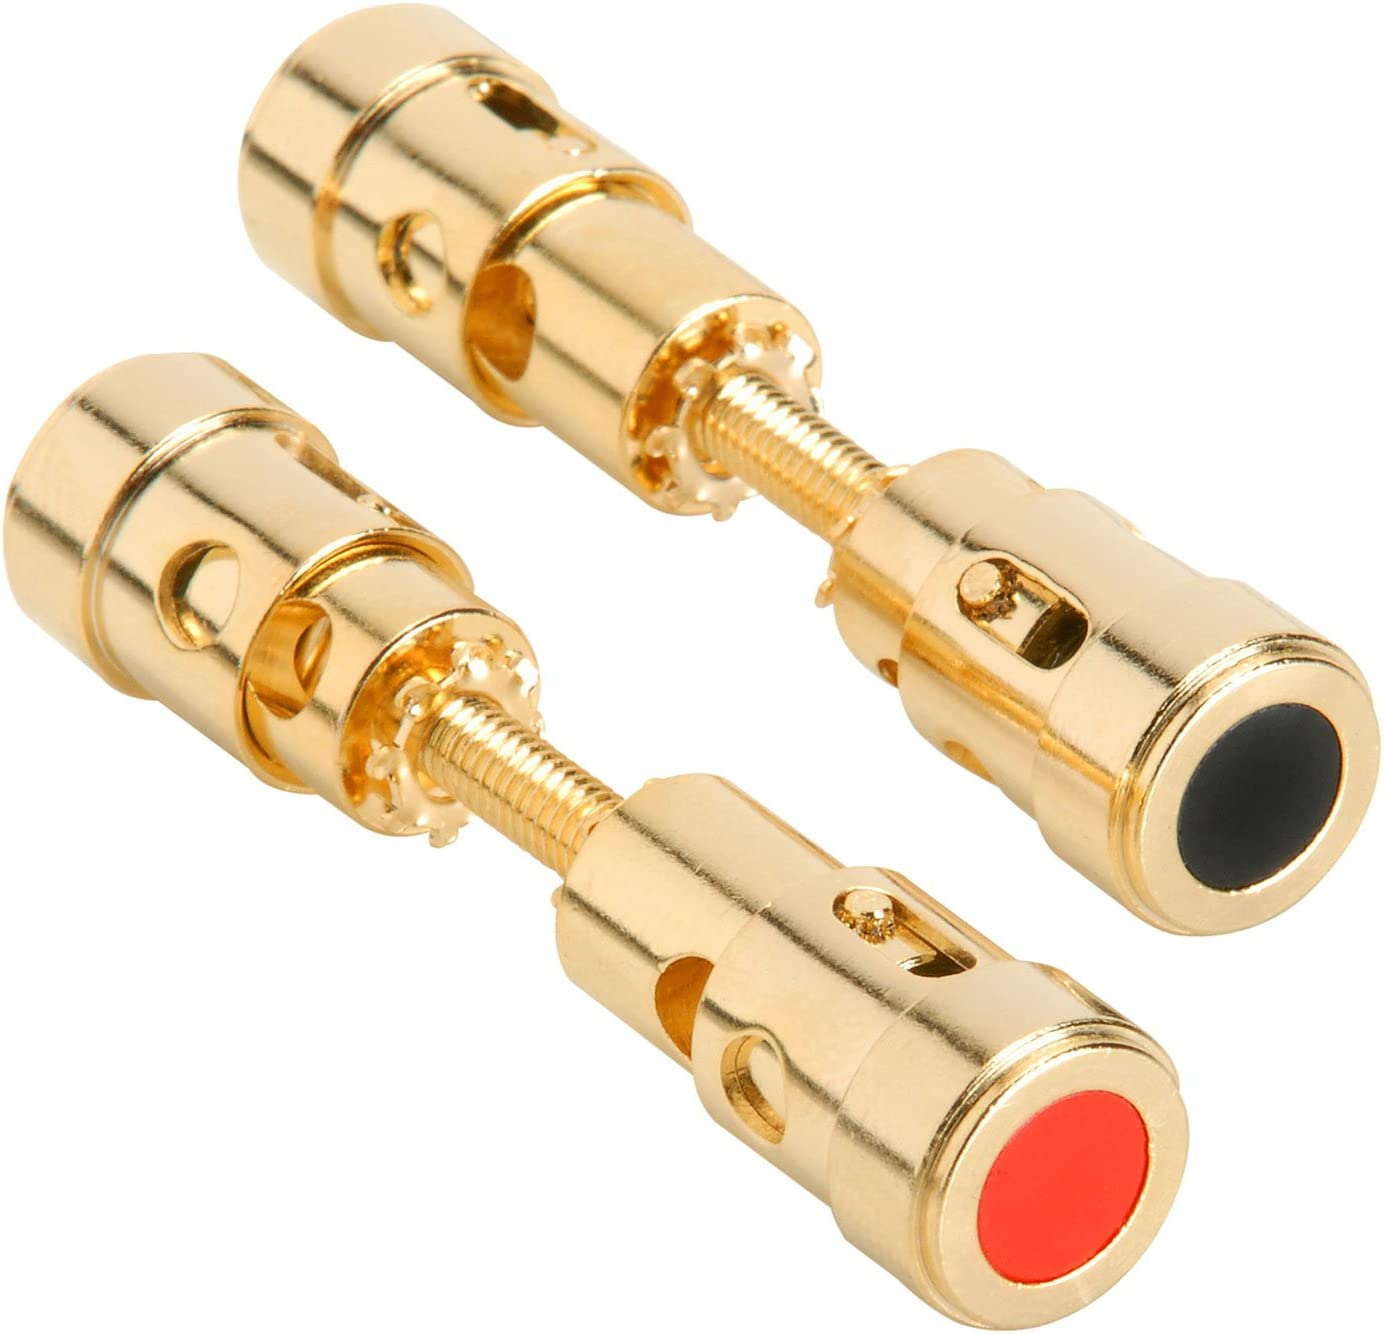 DUAL GOLD PLATED SPEAKER//SUB TERMINAL BANANA PLUG JACK UP TO 8 GAUGE WIRE